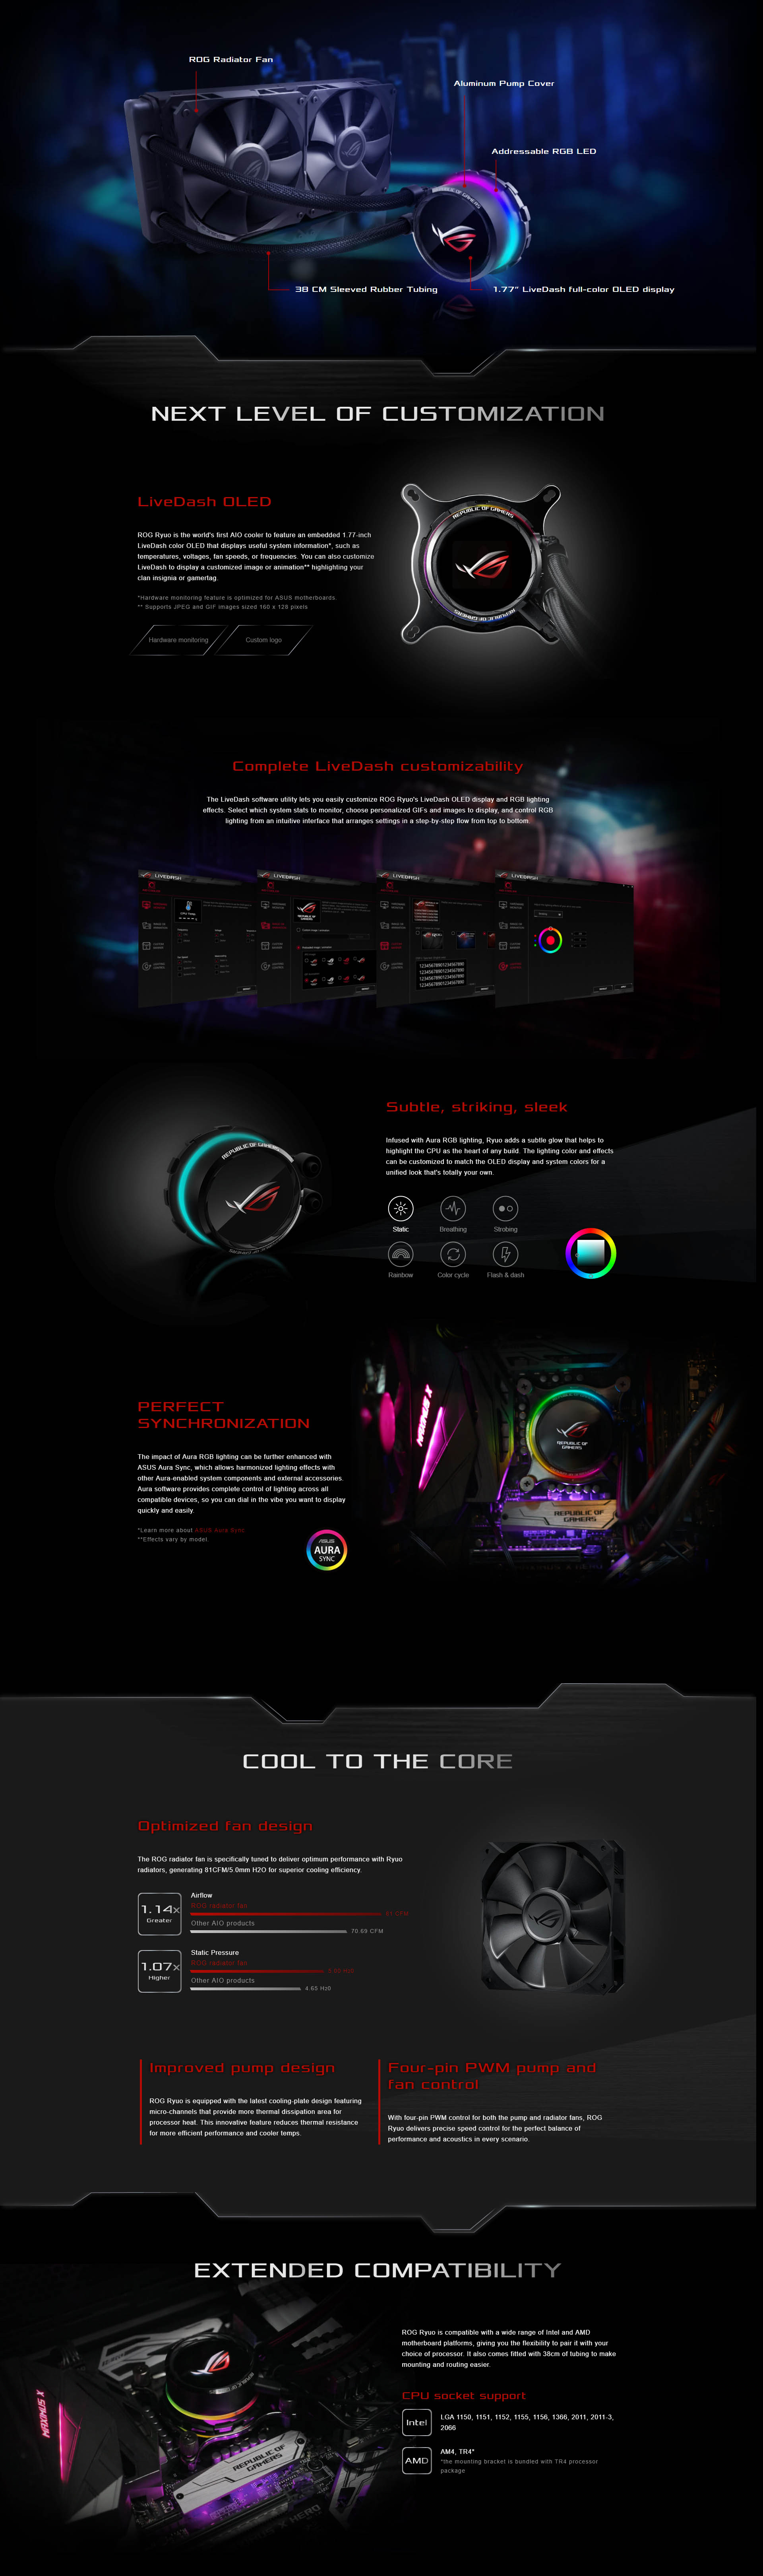 A large marketing image providing additional information about the product ASUS ROG RYUO 240 RGB AIO Liquid Cooler - Additional alt info not provided